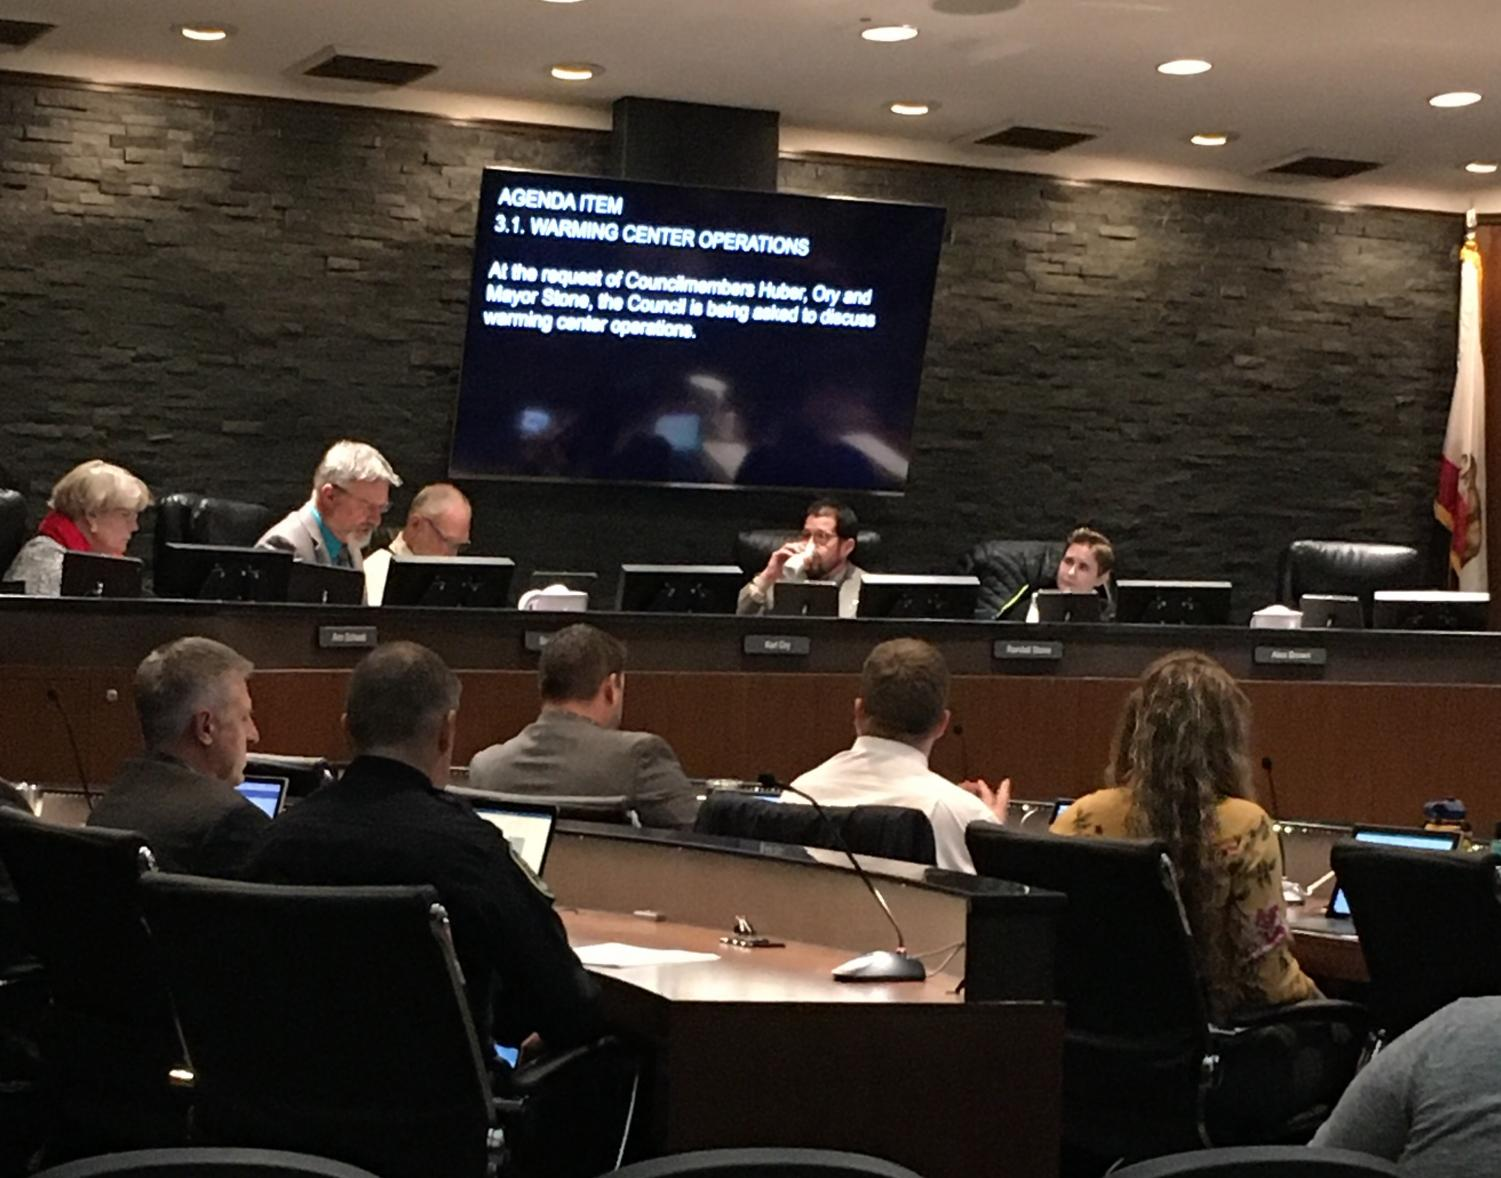 Mayor Stone called for a special council meeting Tuesday to address the issue of warming centers in harsh temperatures. Photo credit: Jack Lewis